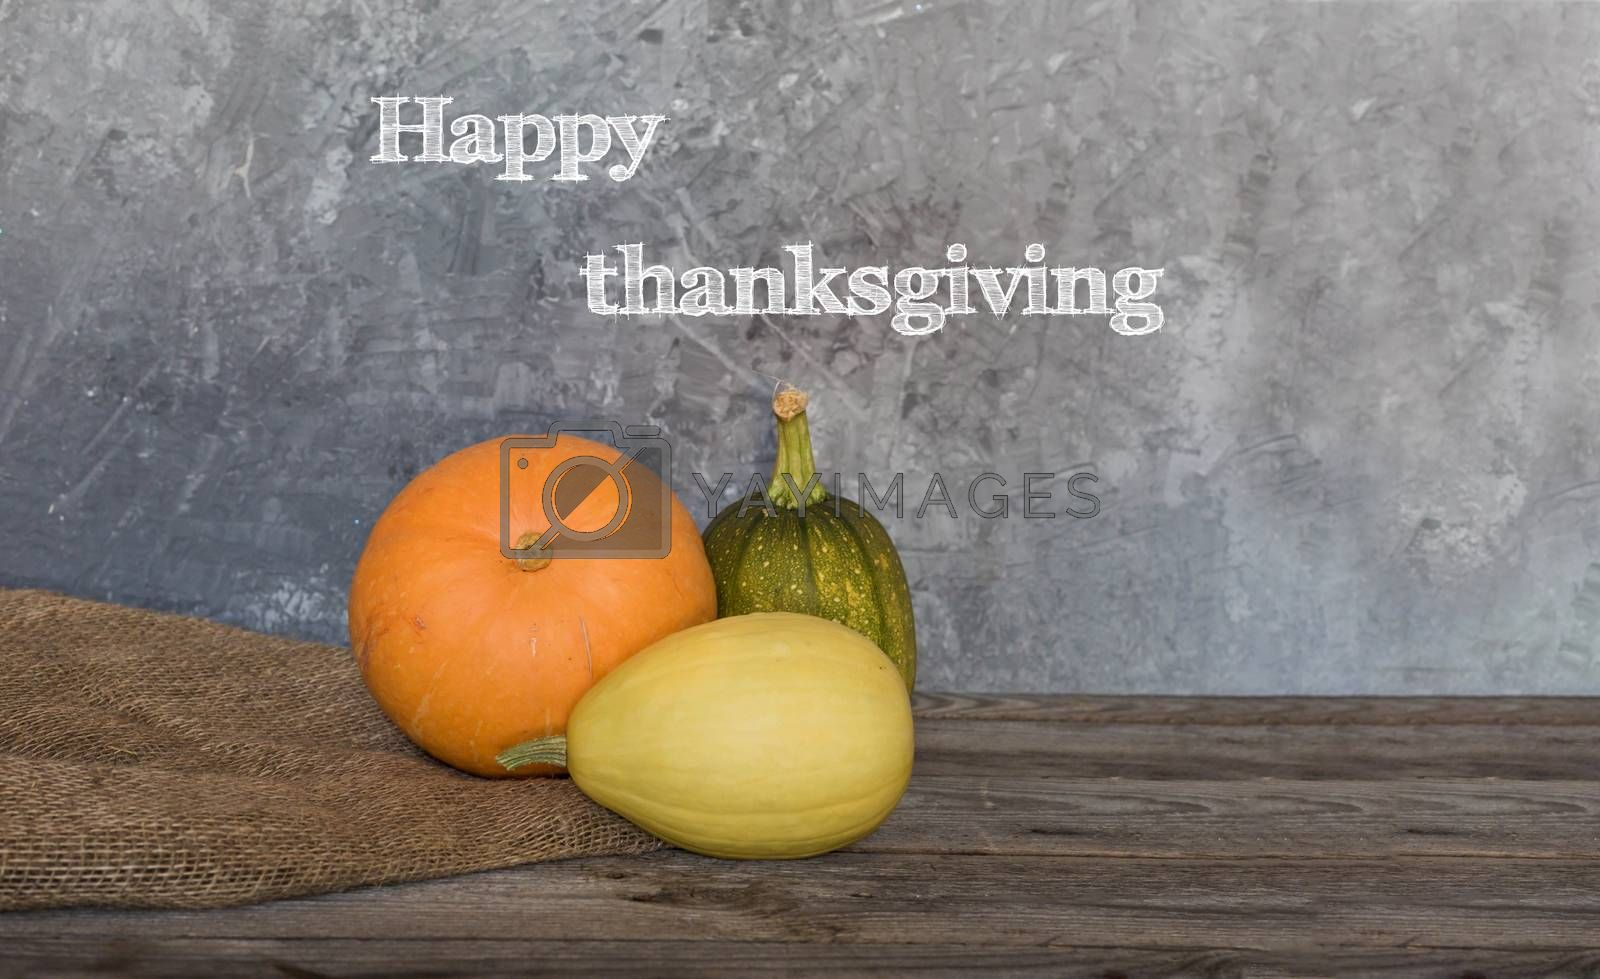 Happy Thanksgiving greeting text with colorful pumpkins over concrete background.